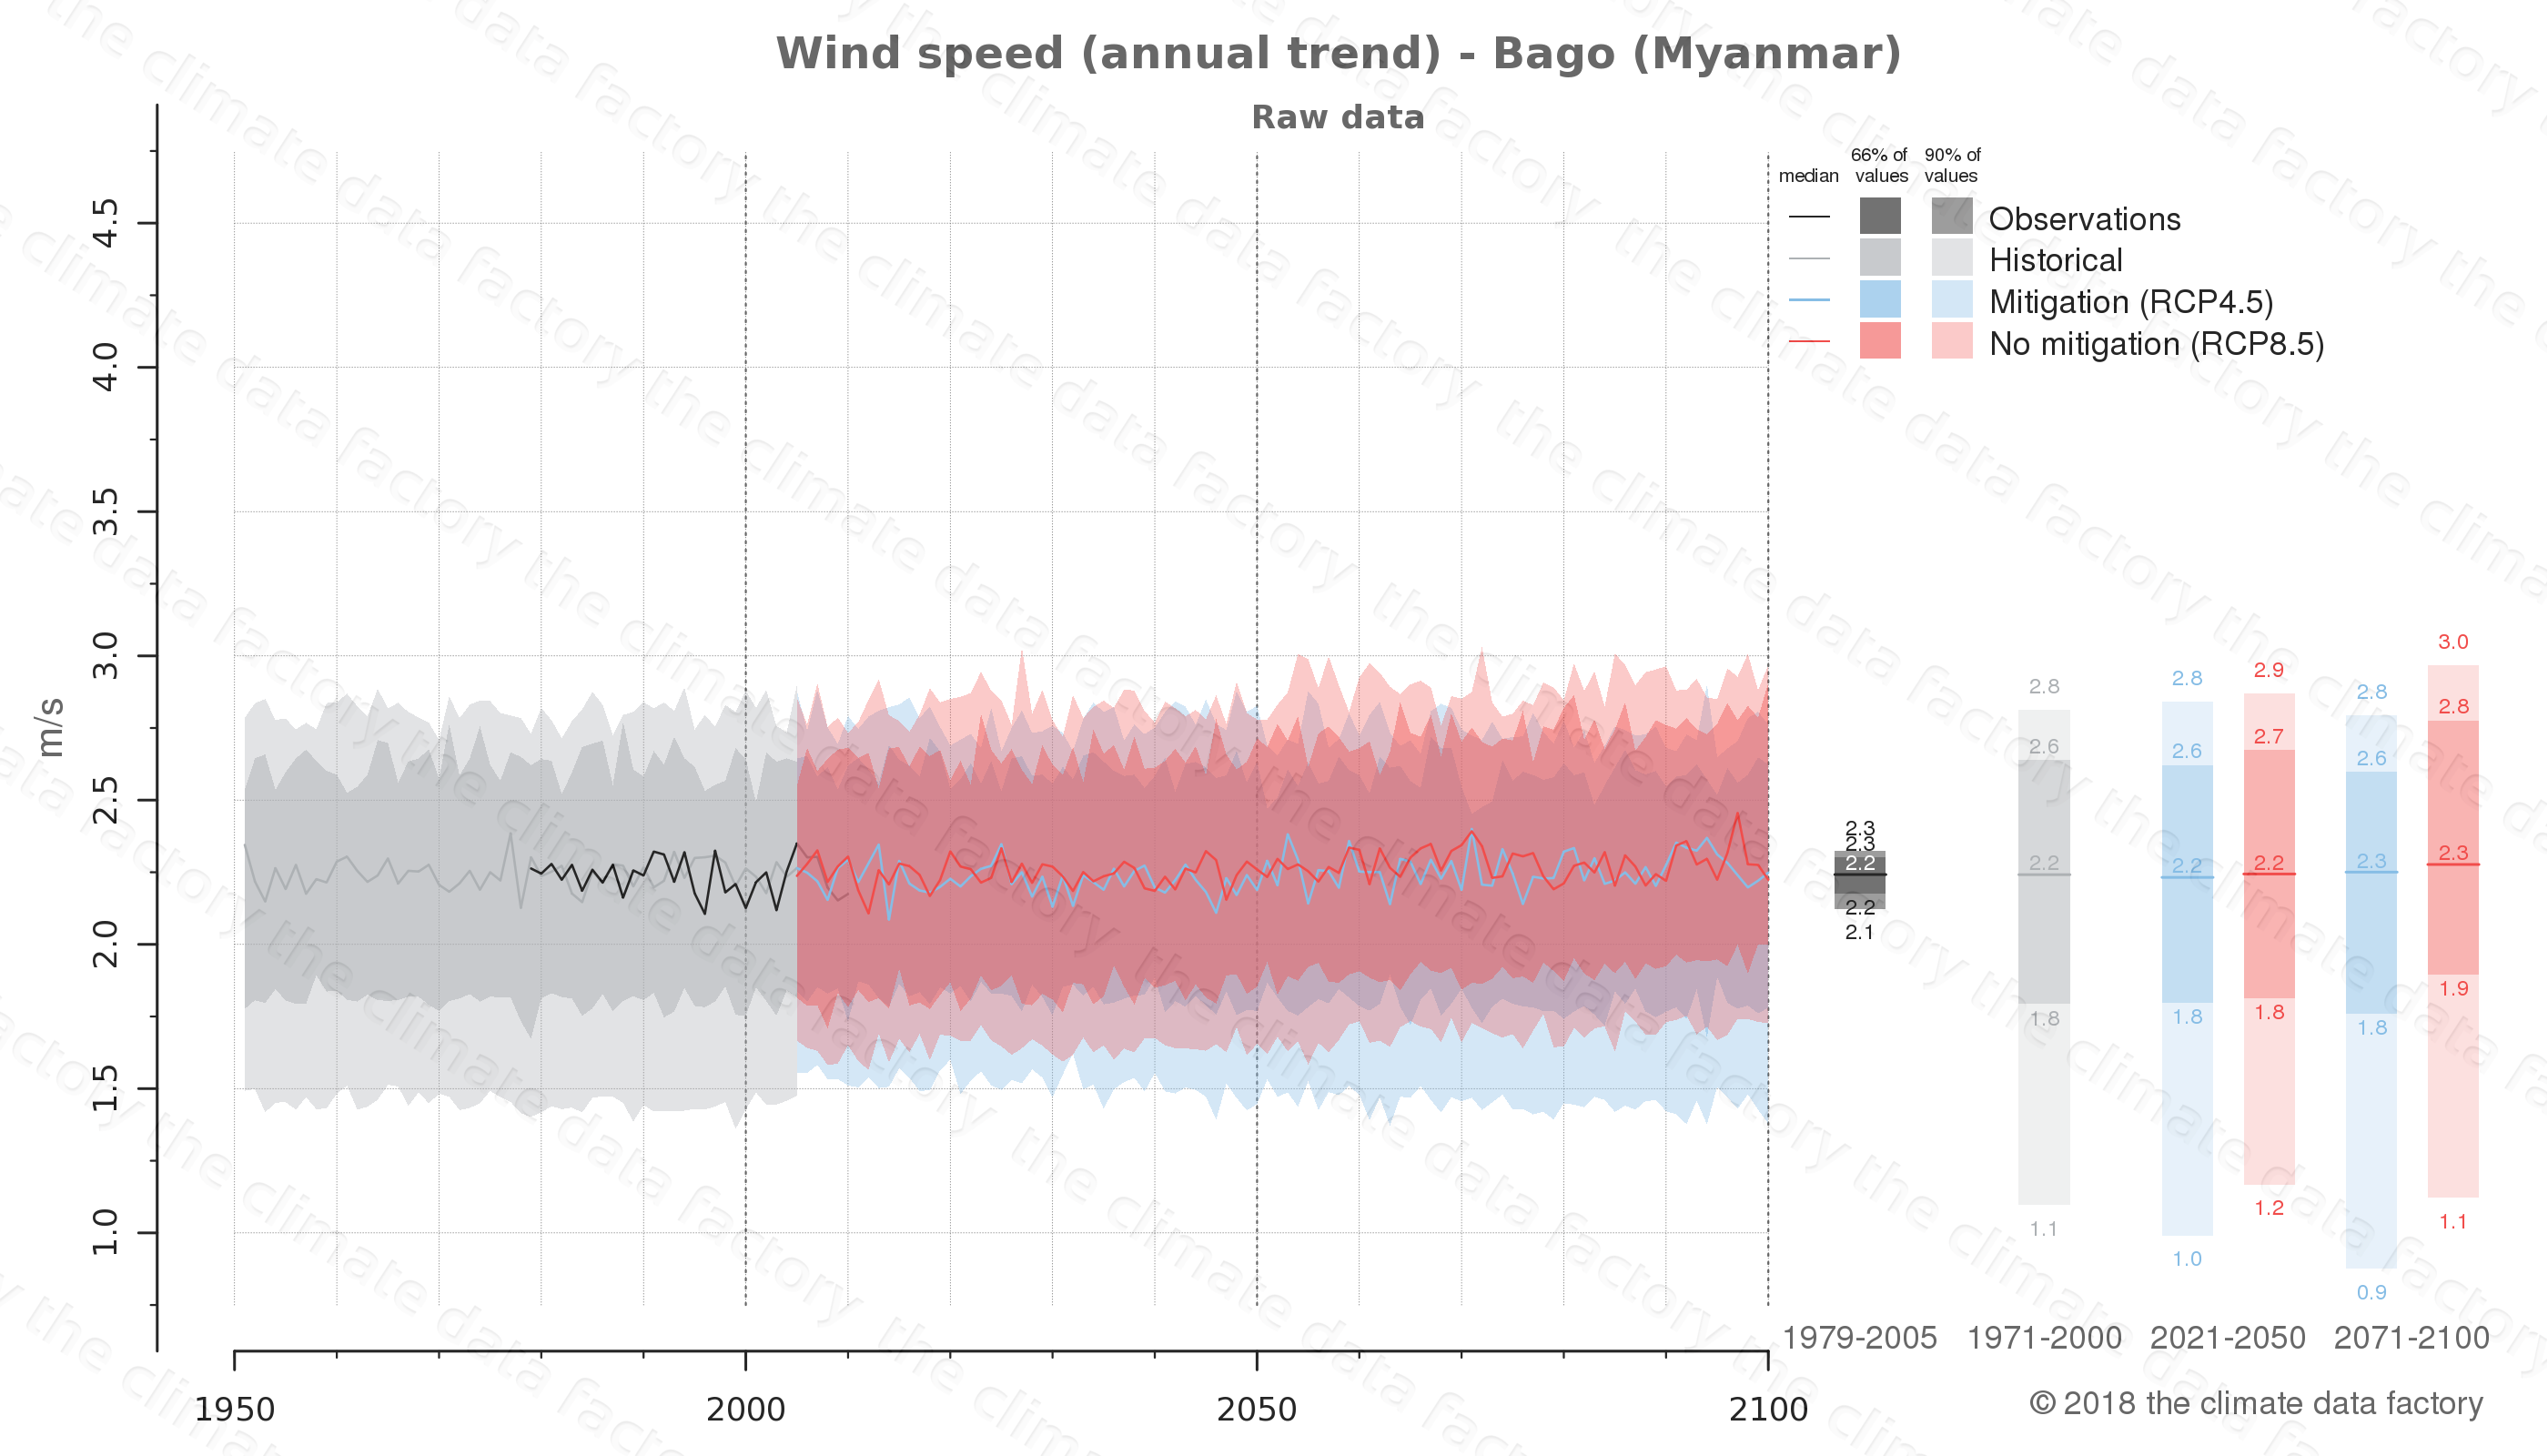 climate change data policy adaptation climate graph city data wind-speed bago myanmar